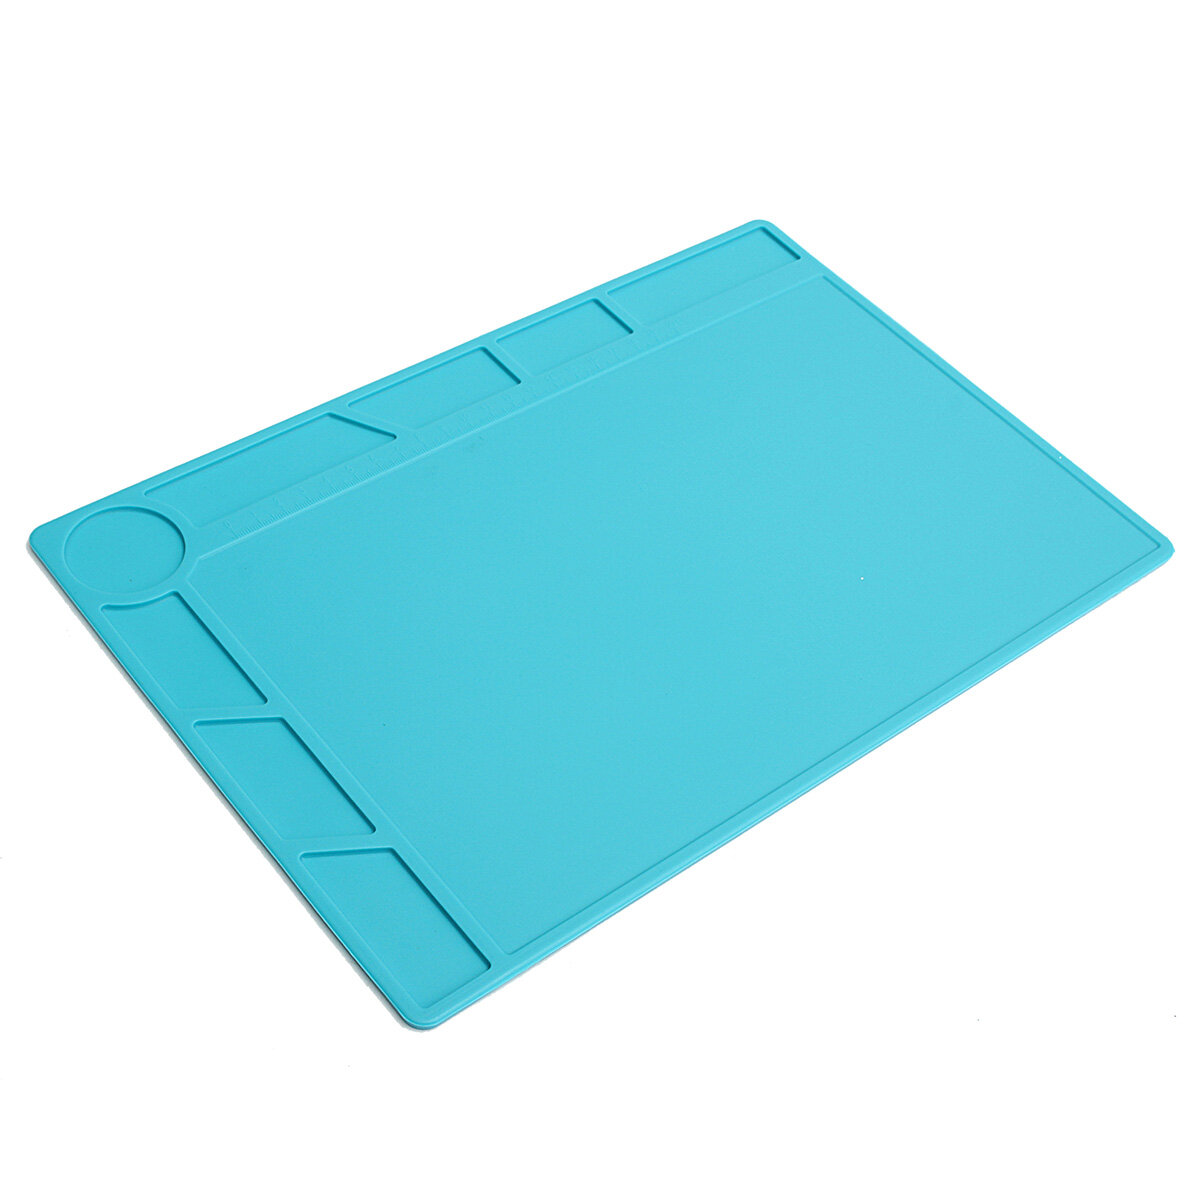 35x25cm Magnetic Heat Resistant Silicone Pad Desk Mat Maintenance Platform Heat Insulation BGA Soldering Repair Station - 6